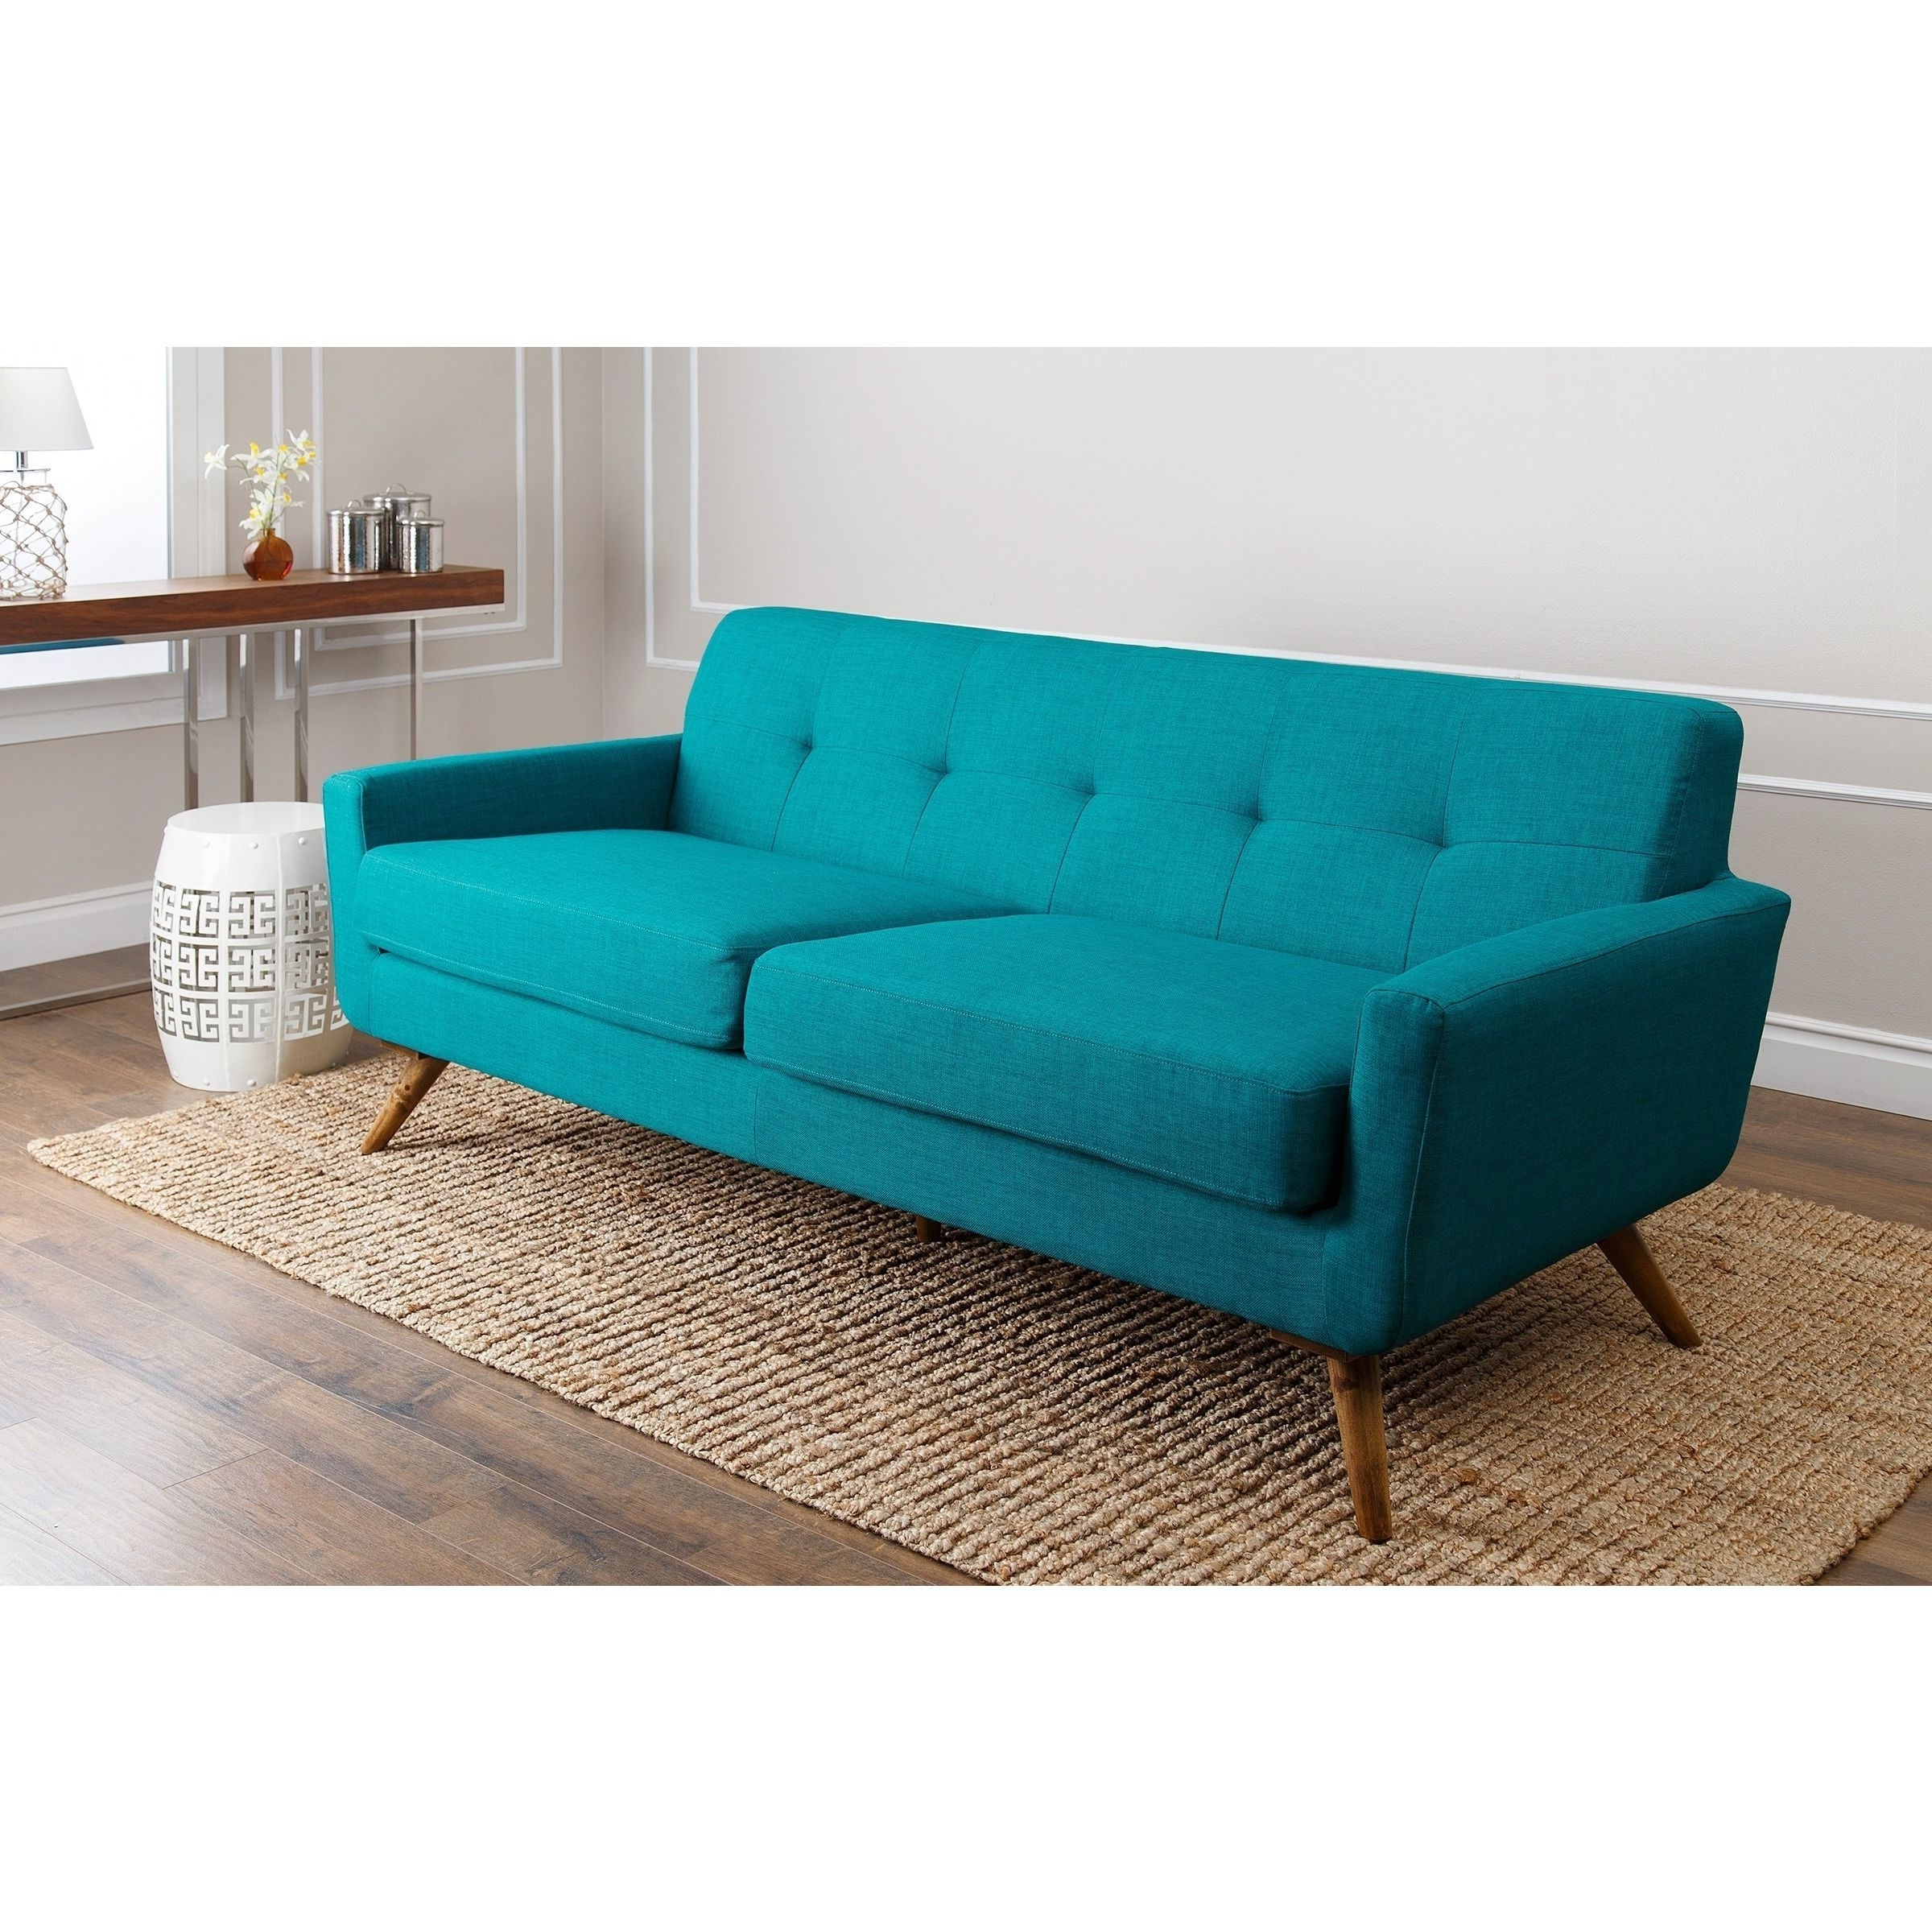 Sofa Petrol Onassis Sofa By Andrew Martin Signature In 3 Seater